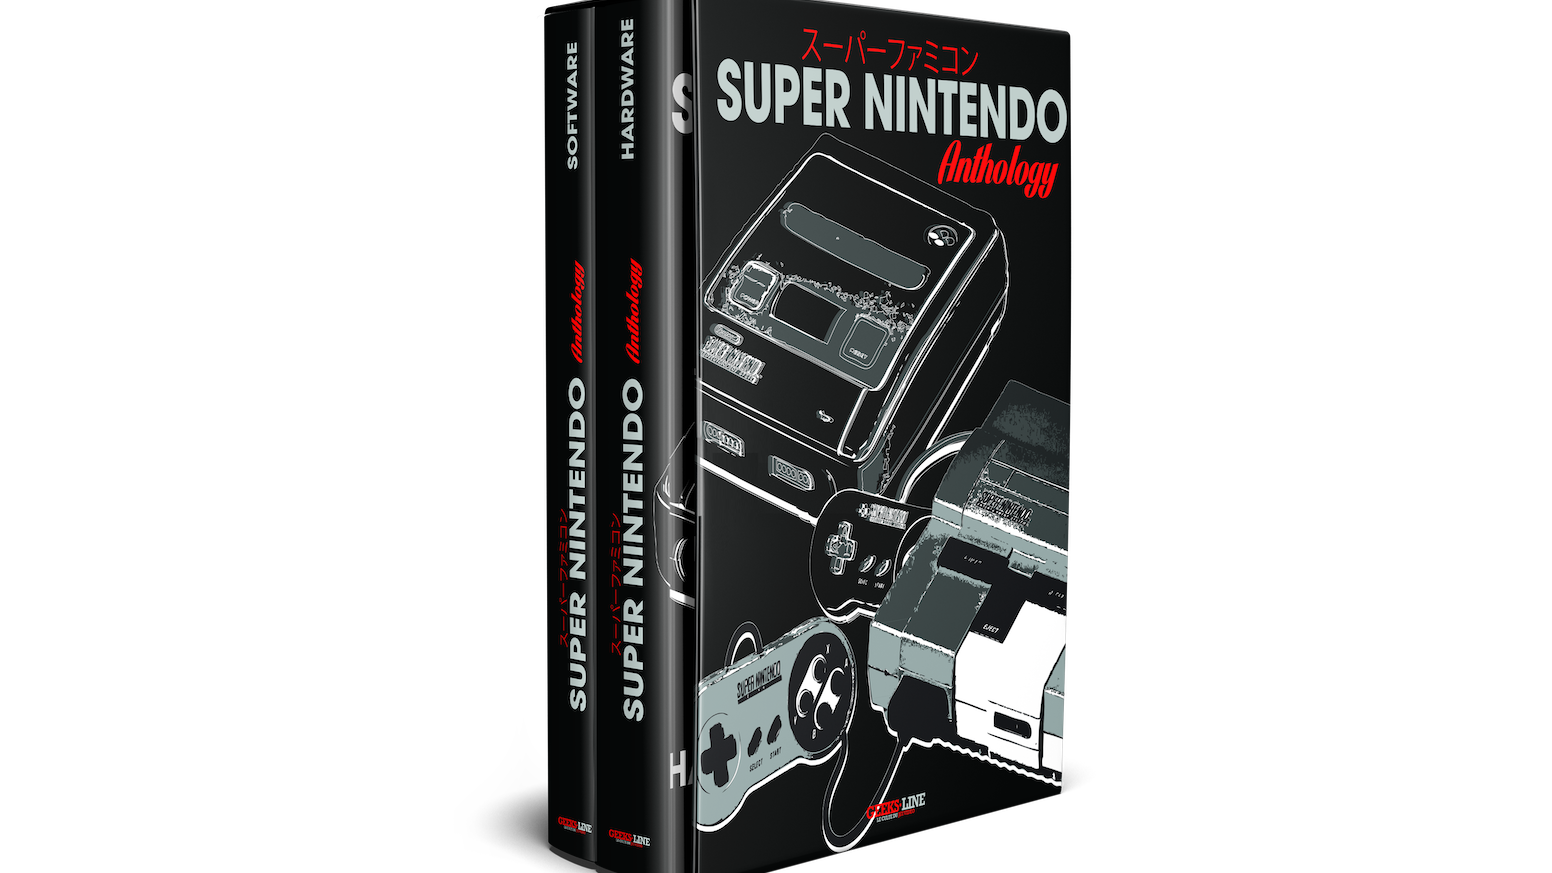 2 Books In 1 (Hardware and Software), More Than 620 Pages, The Ultimate Reference For All Super Nintendo Fans!